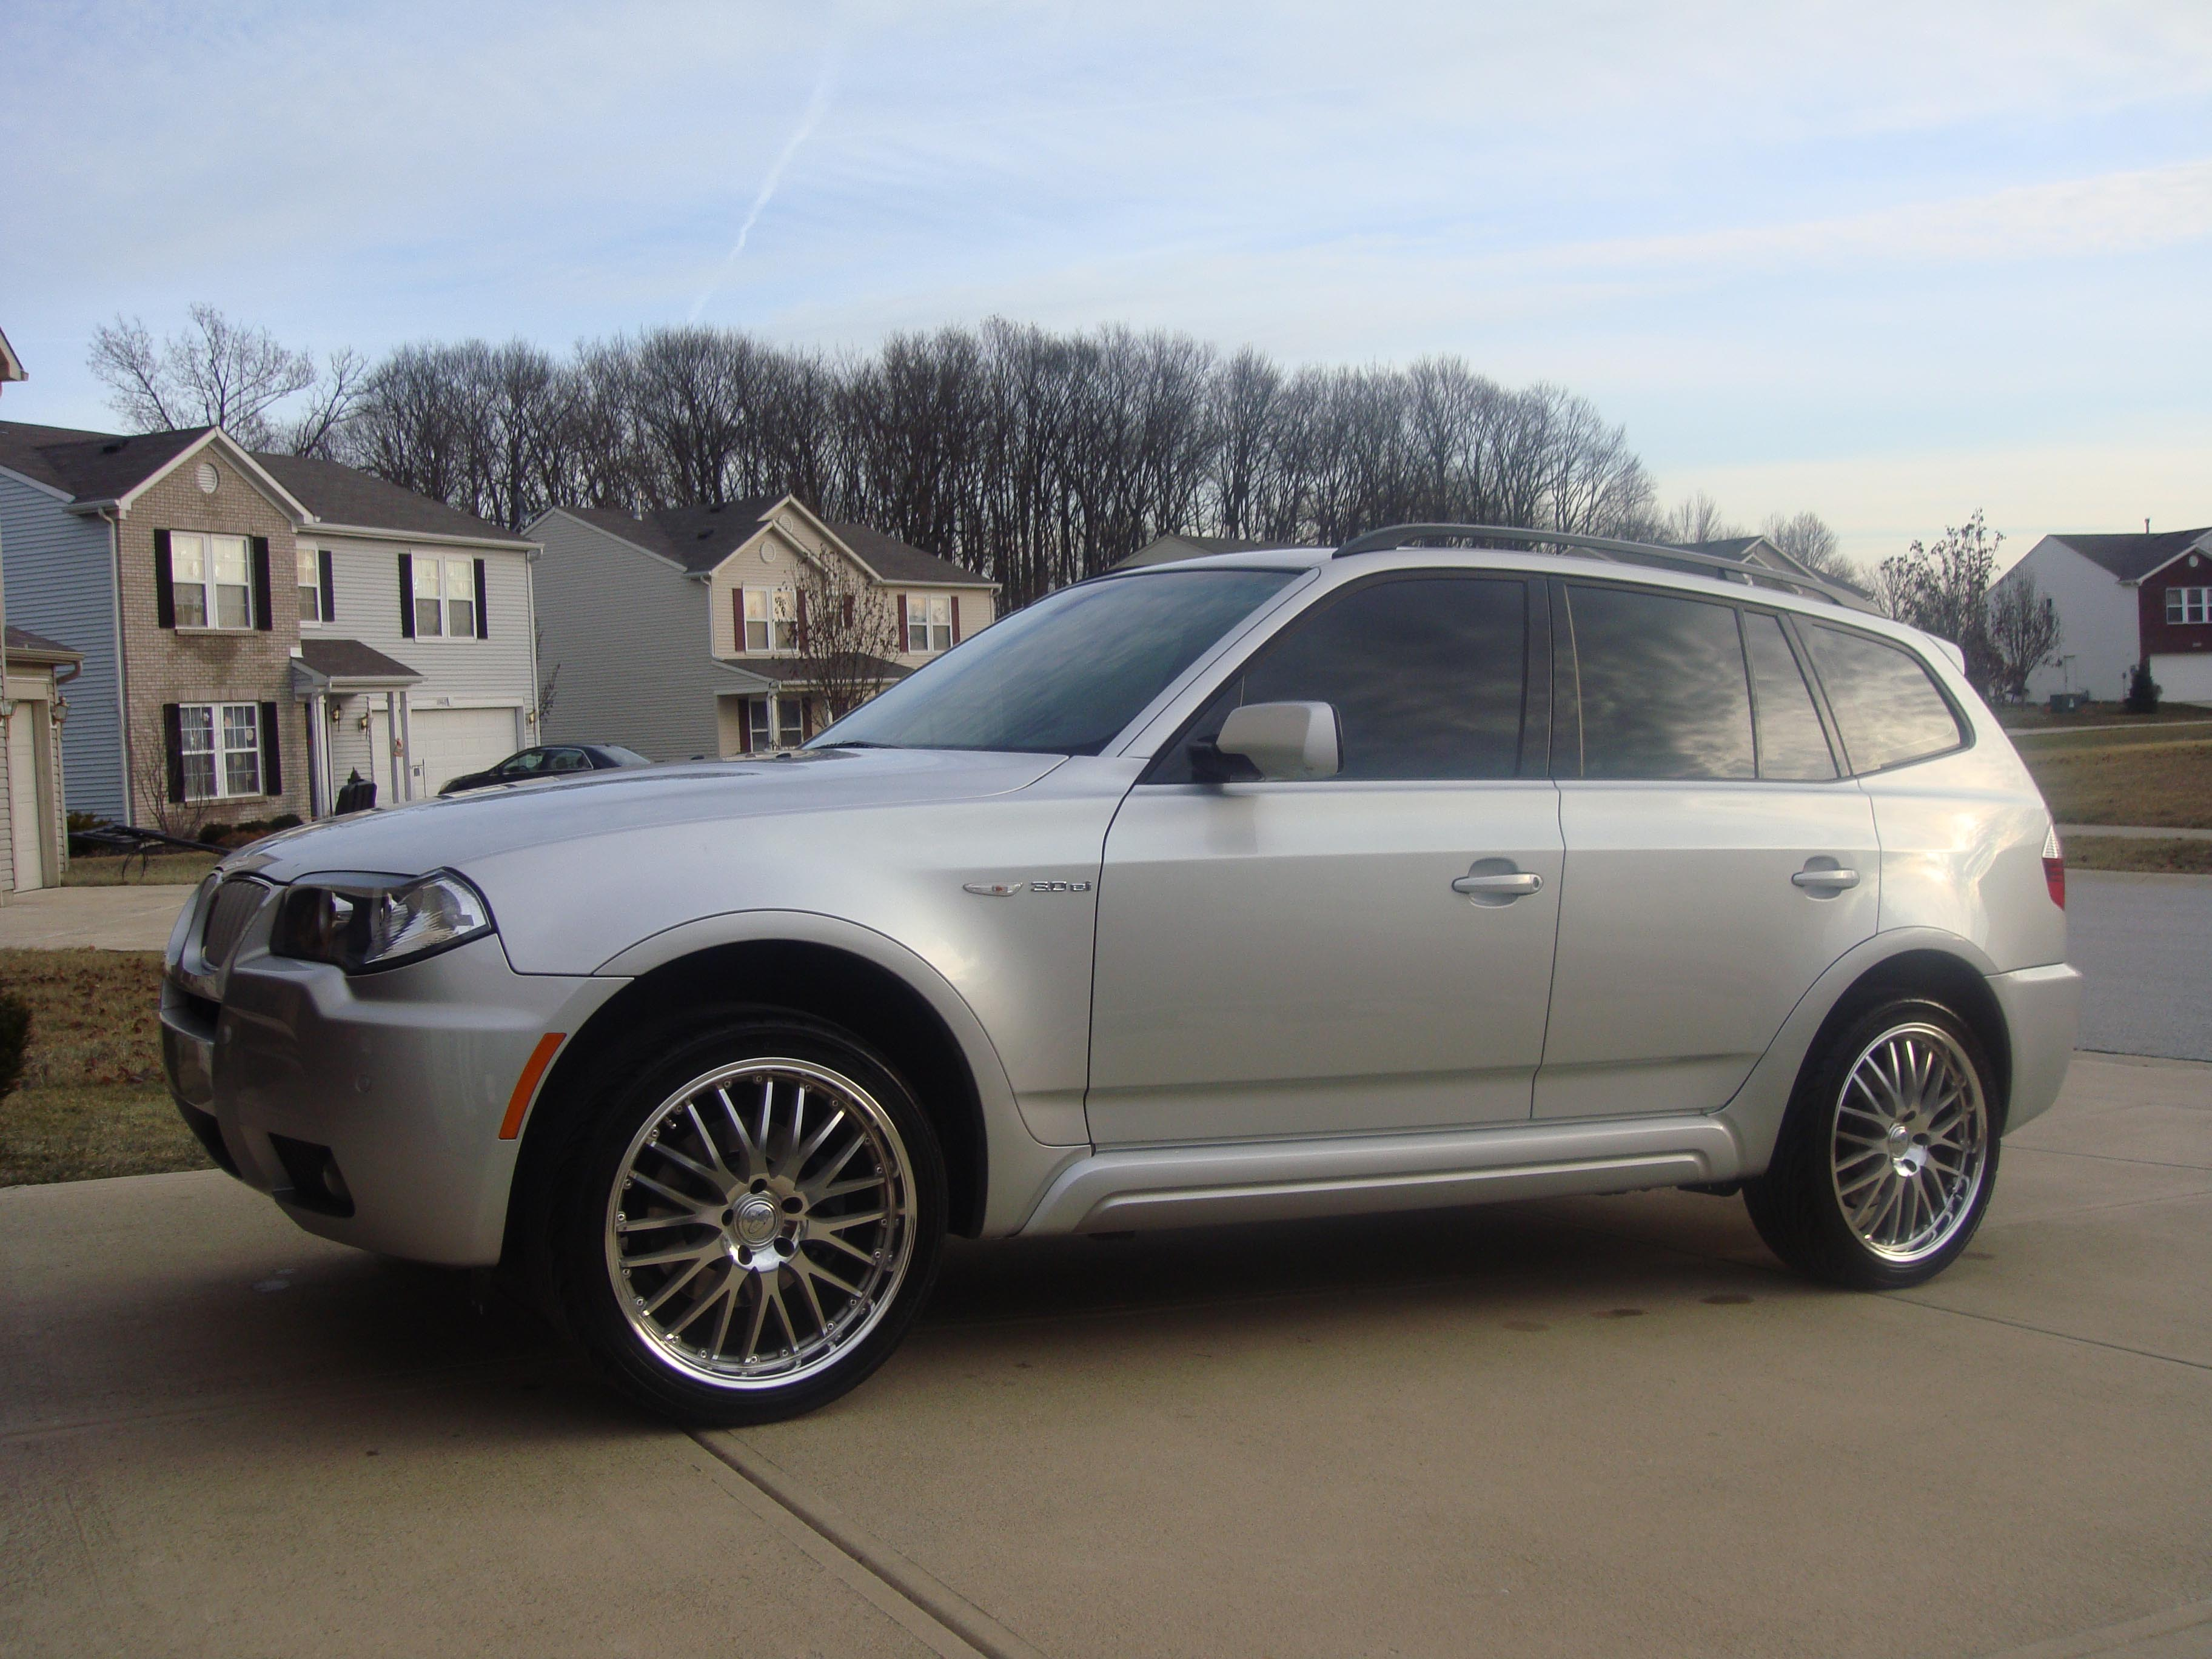 X3 wheel choices: 18's, 19's or 20's?-side20s.jpg